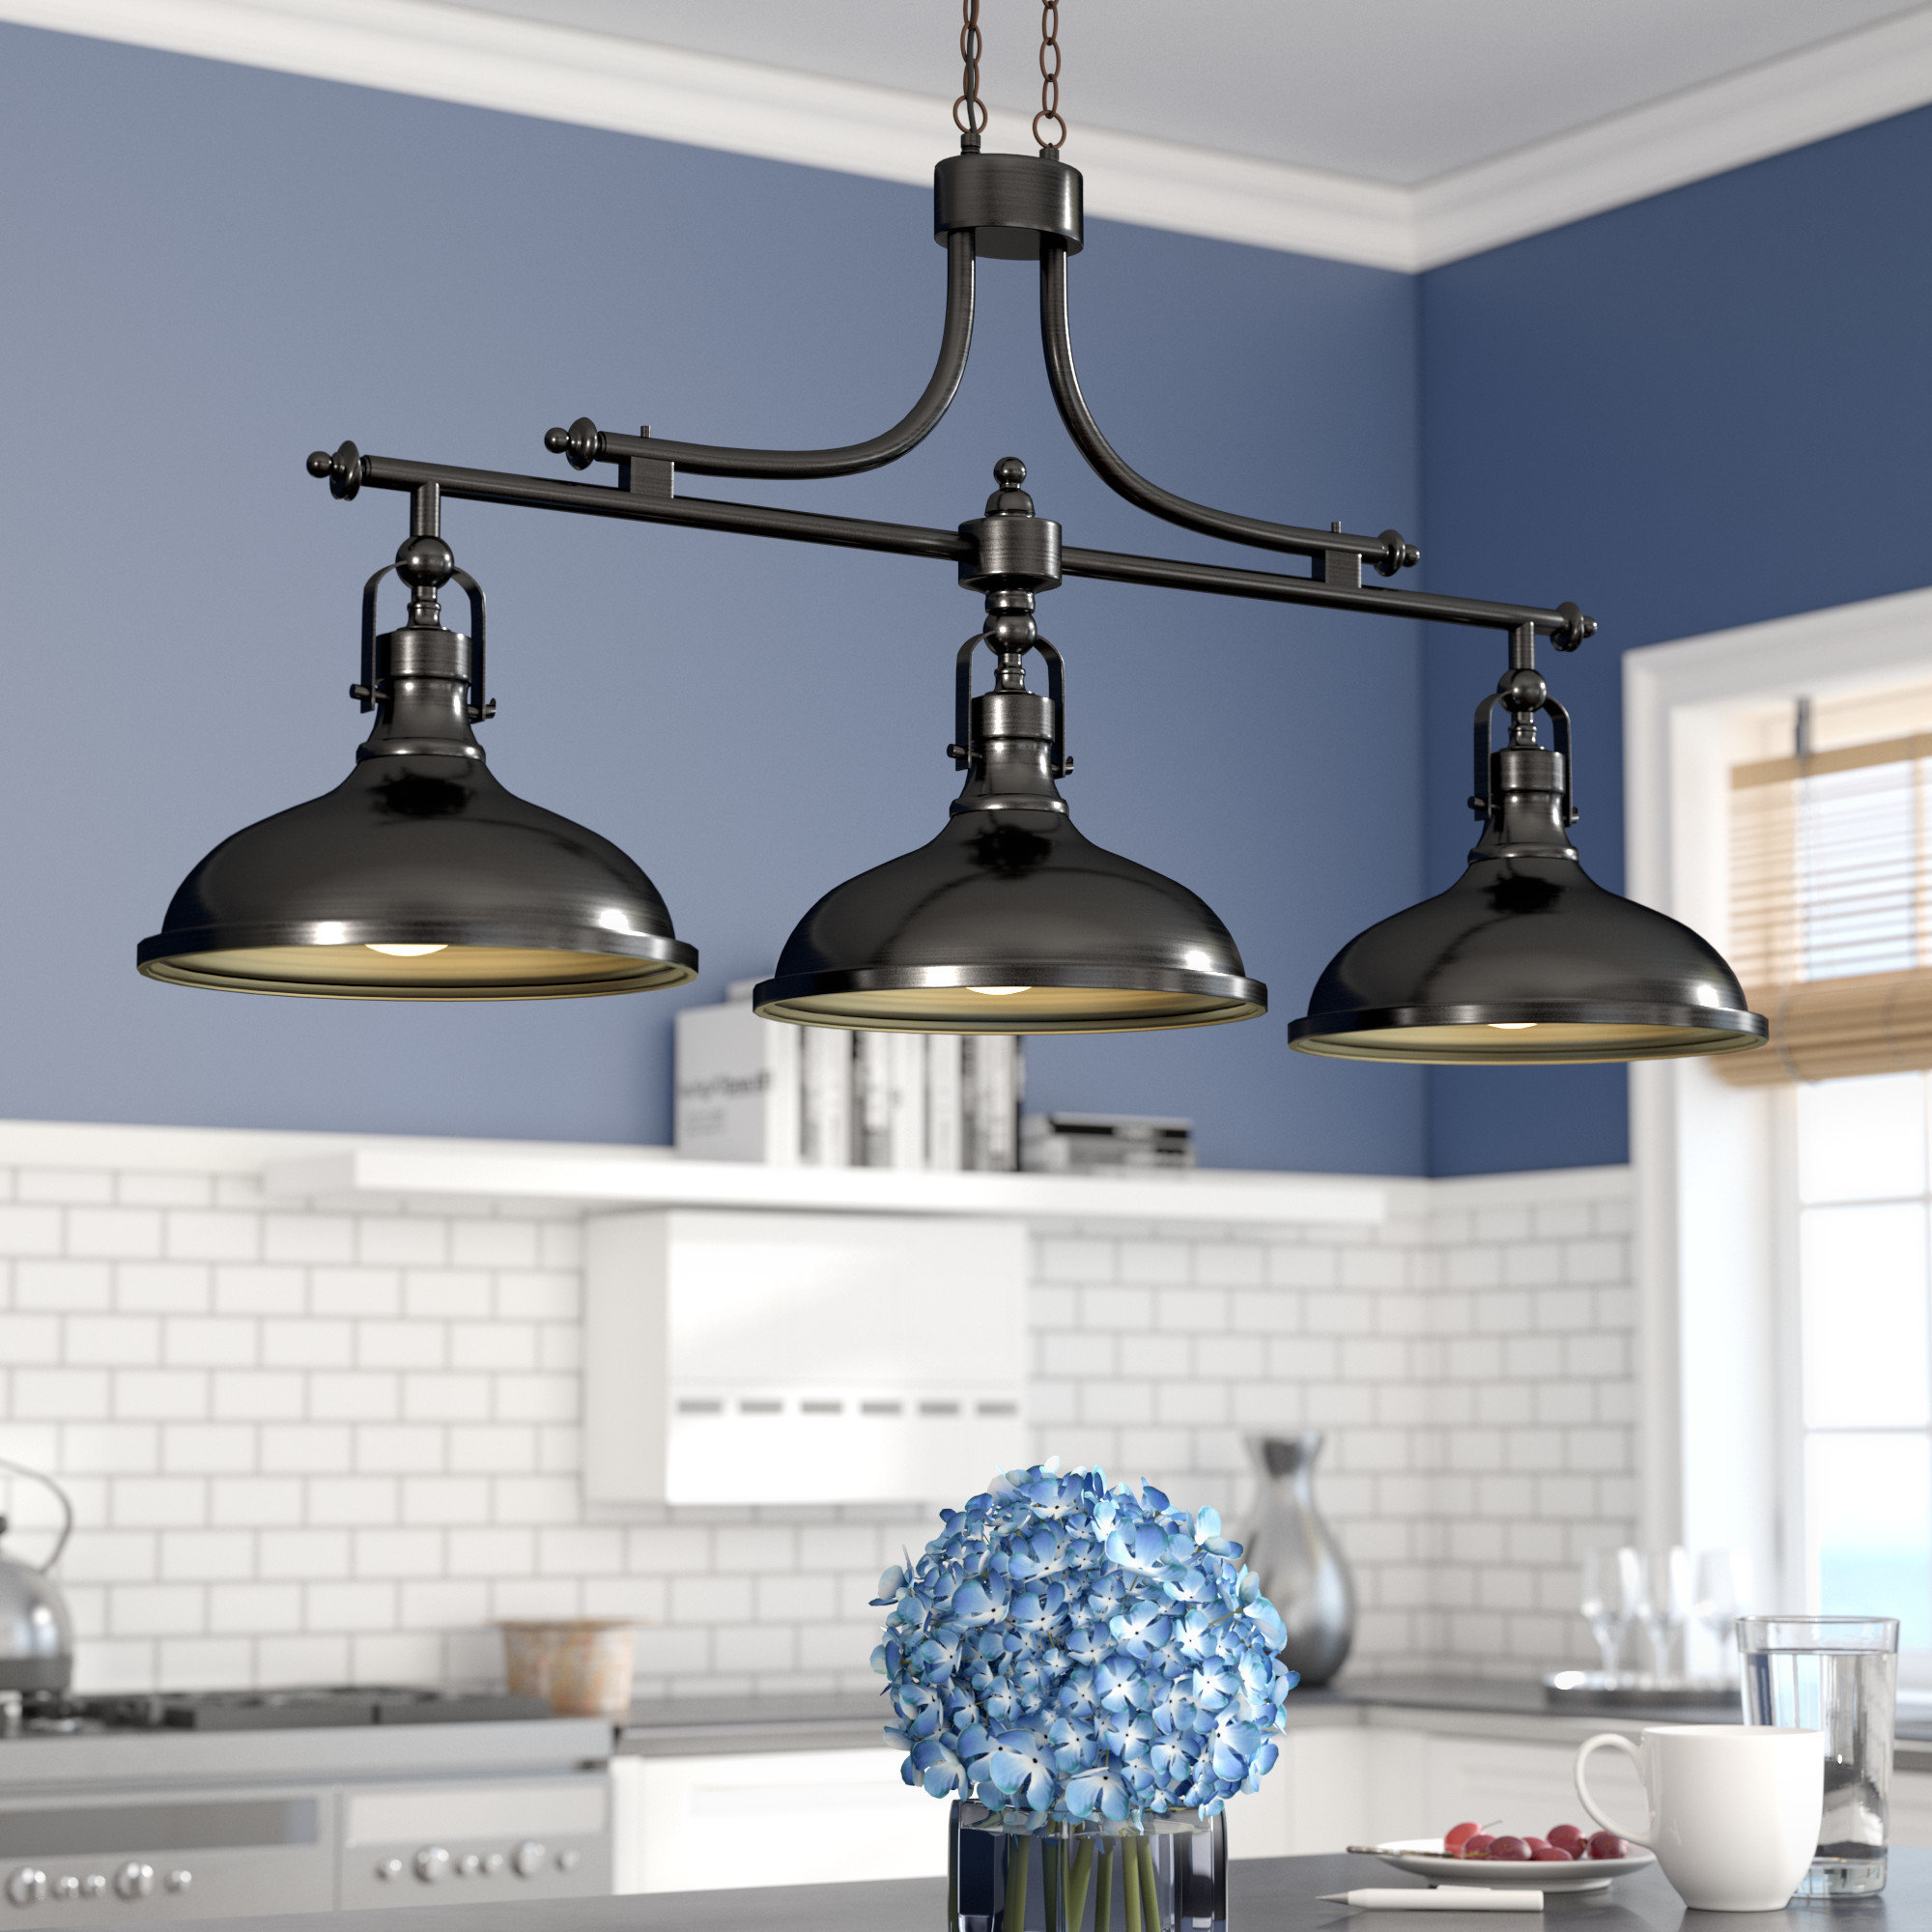 Ariel 3 Light Kitchen Island Dome Pendants Pertaining To Trendy Kitchen Island Pendant Lighting Fixtures – Gnubies (View 6 of 25)